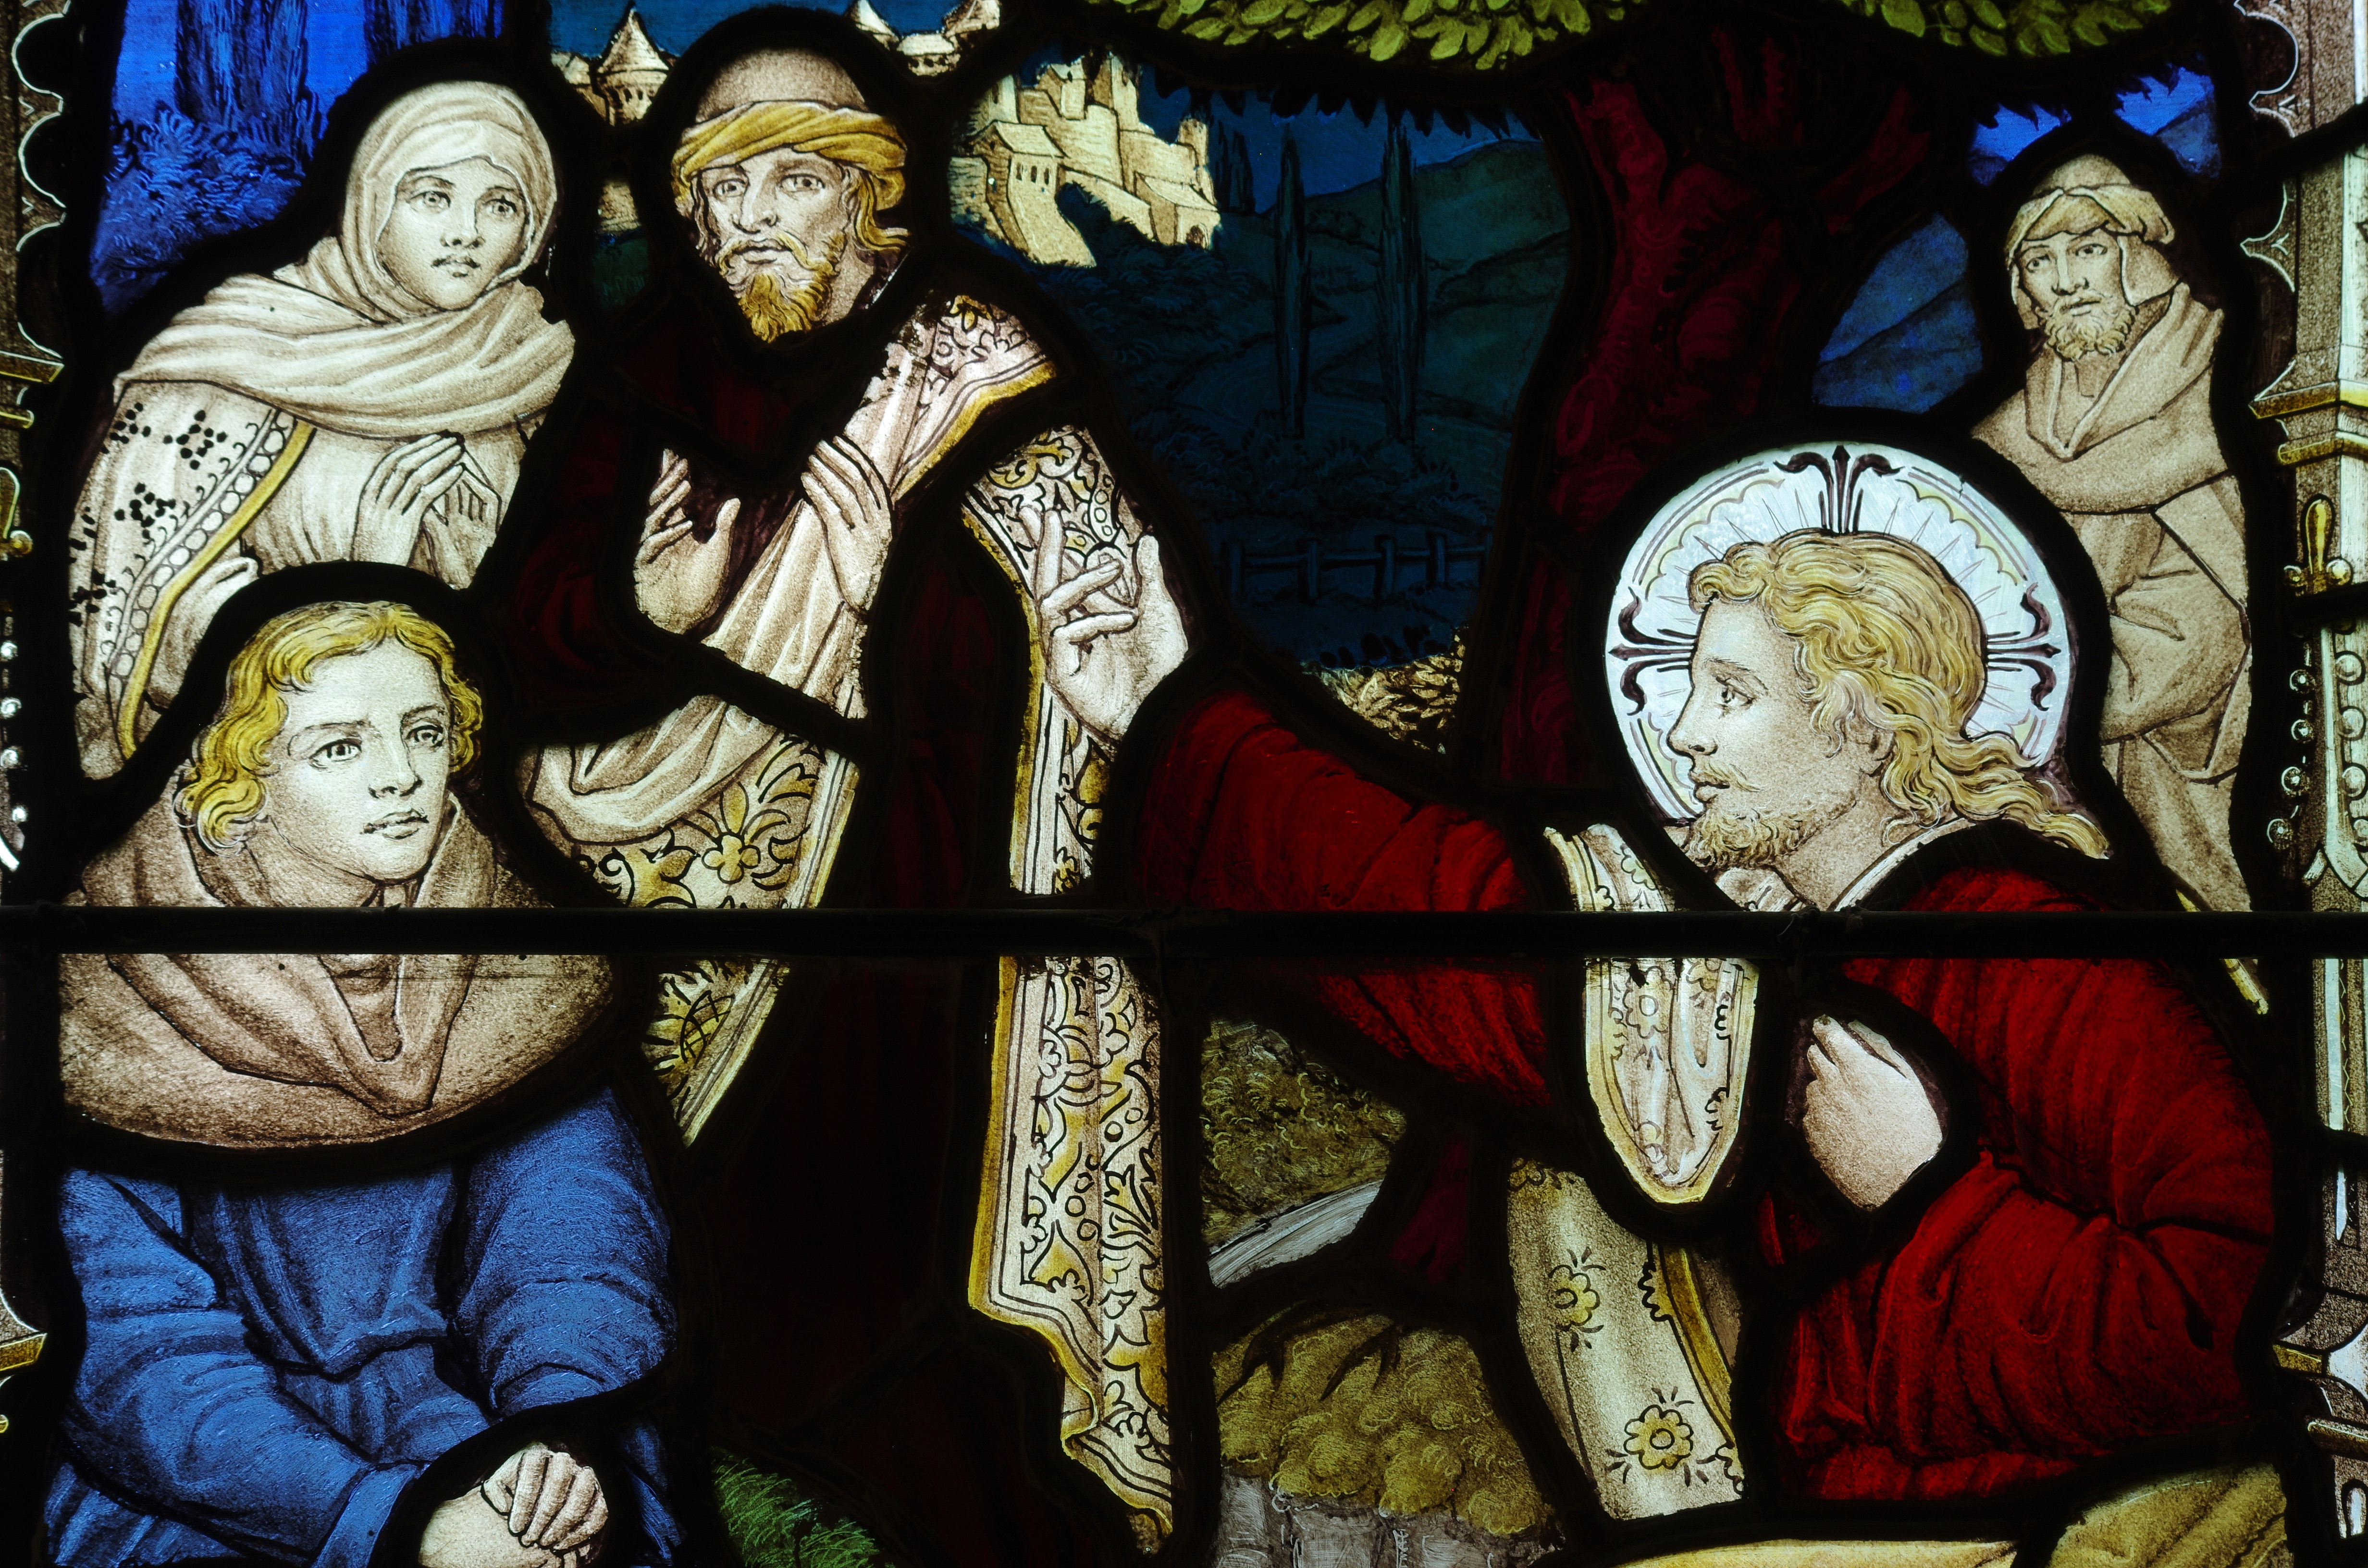 Christ preaching on shores of Lake Galilee. Stained glass.